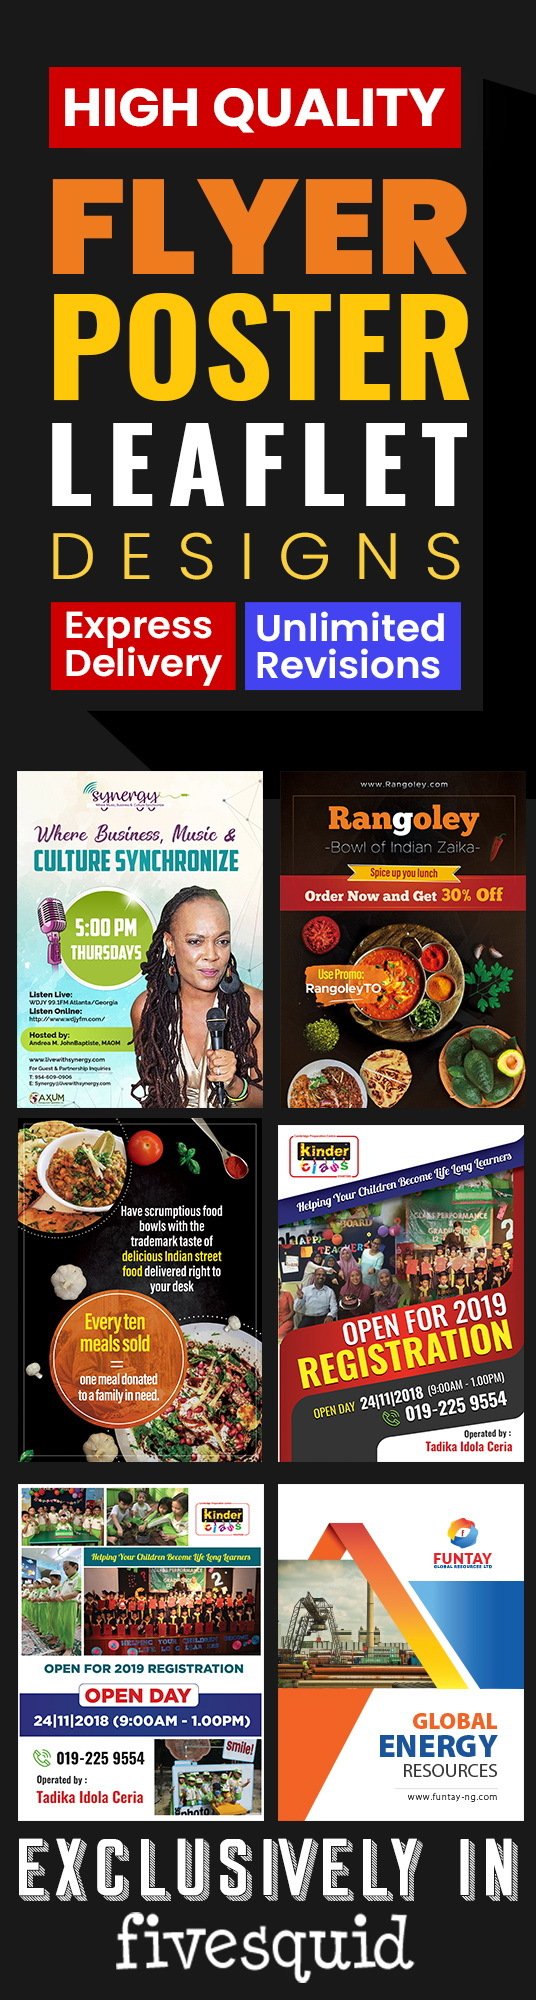 I will design Professional High-Quality Flyer, Poster or Leaflet